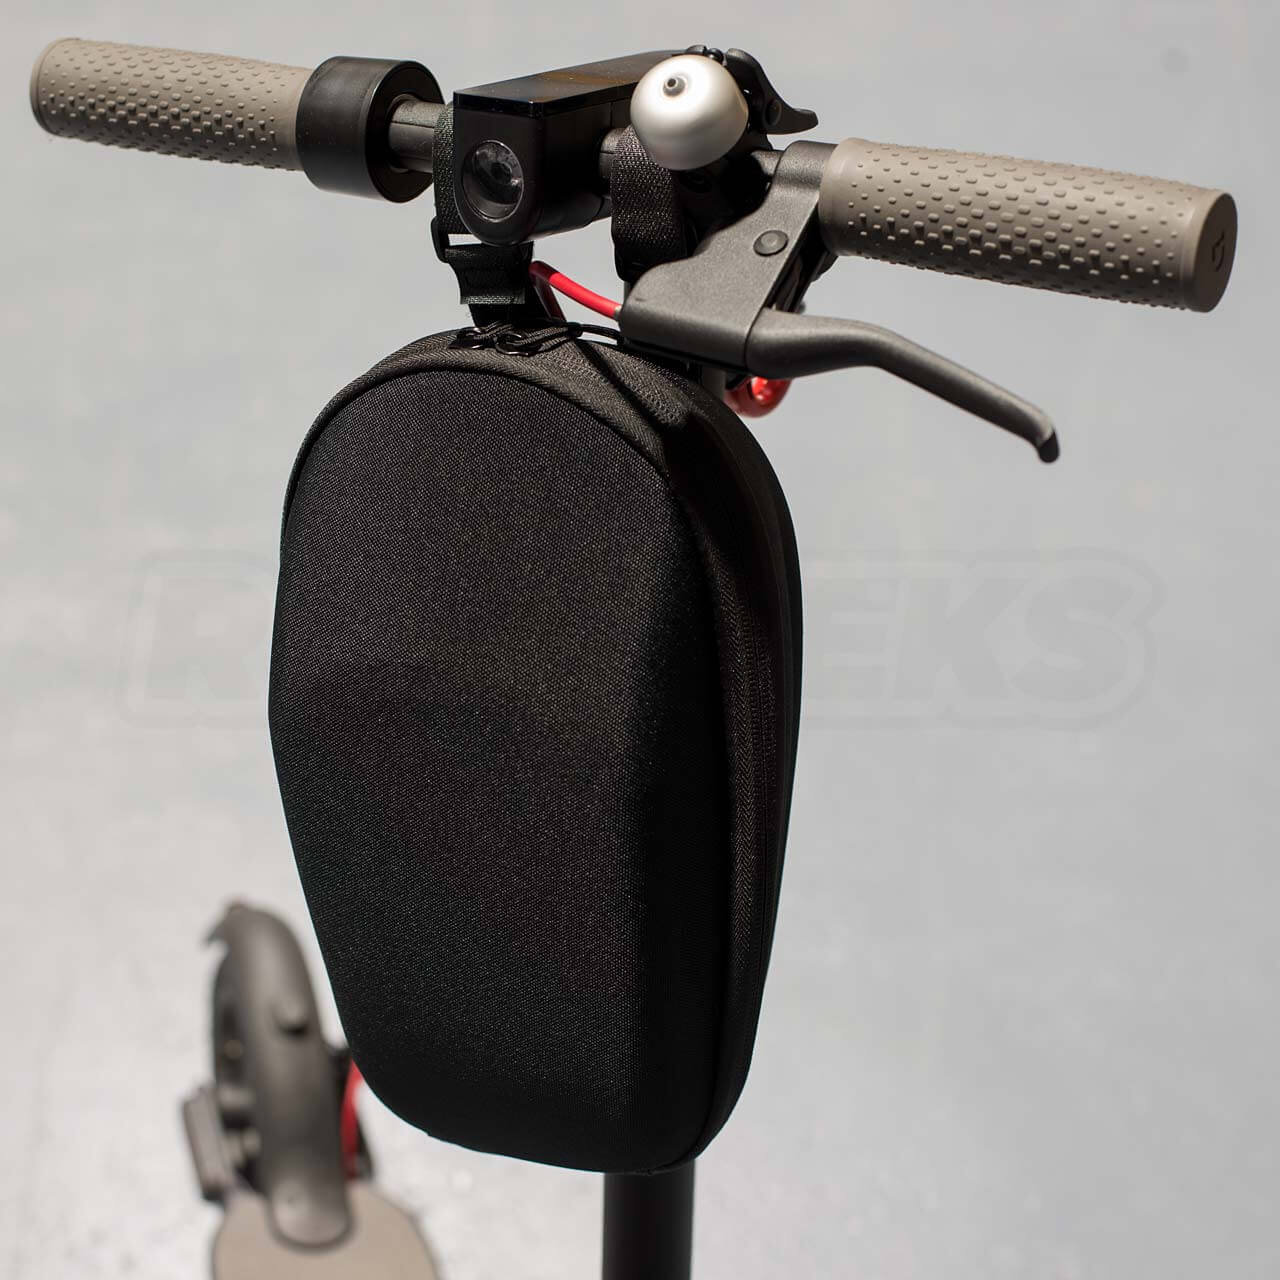 Mi-Electric-Scooter-Accessories-Handle-Storage-Bag-mounted-closed